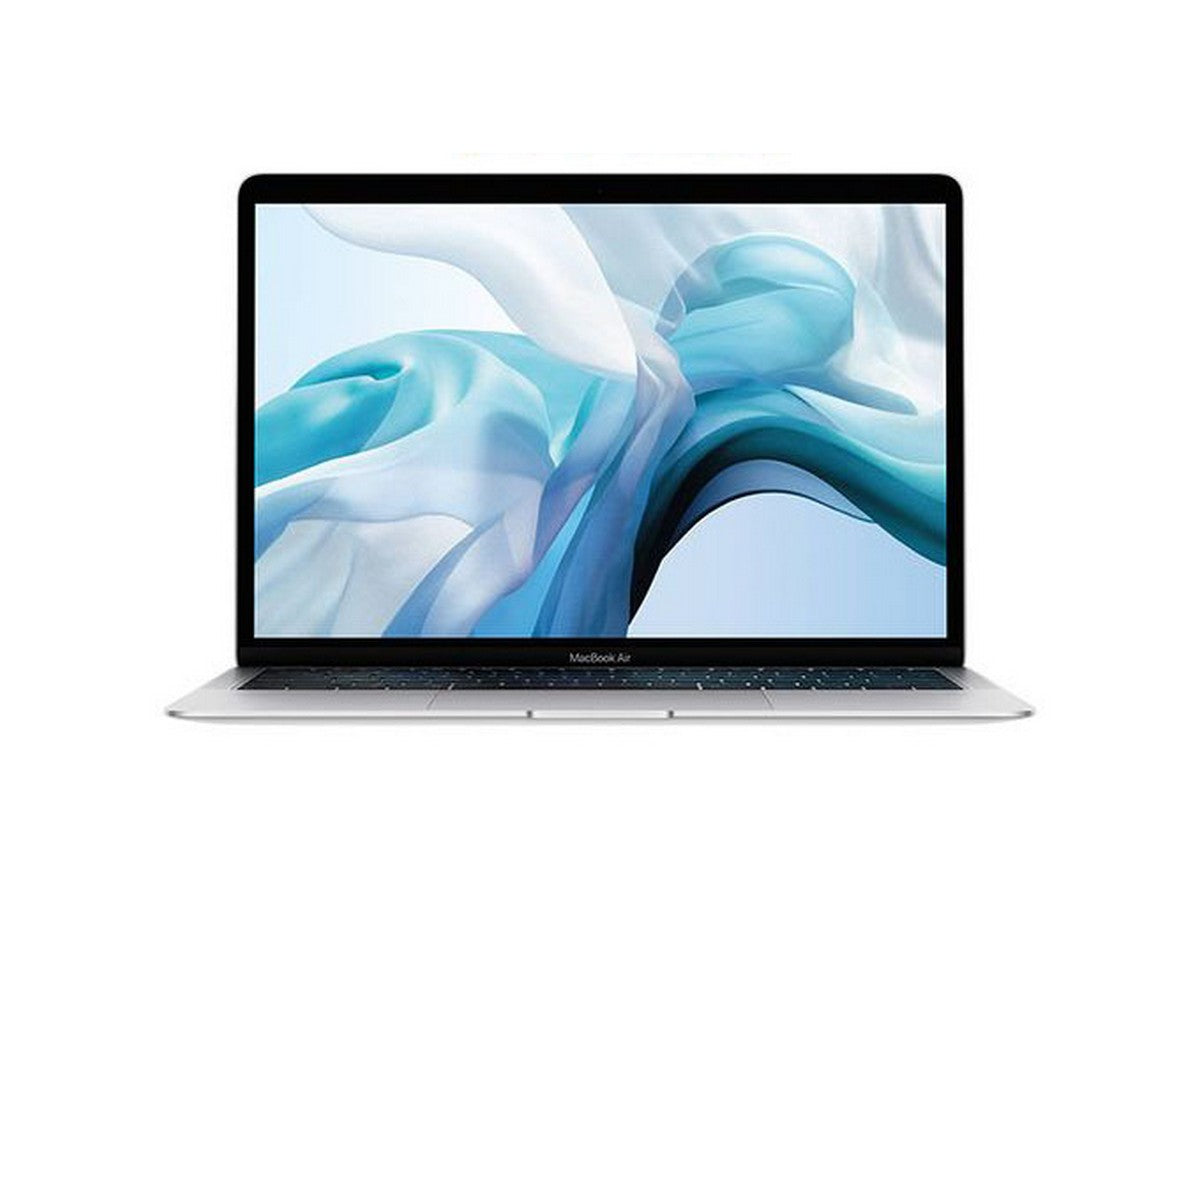 Apple MacBook Air 13 Laptop (Late 2018) 13.3'' QHD IPS , Intel Core i5 1.6GHz up to 3.6GHz with 4MB cache, 8GB RAM, Intel UHD617 GPU, 128GB SSD, Touch ID, Model:MREA2LL/A, MacOS, English Keyboard, Silver